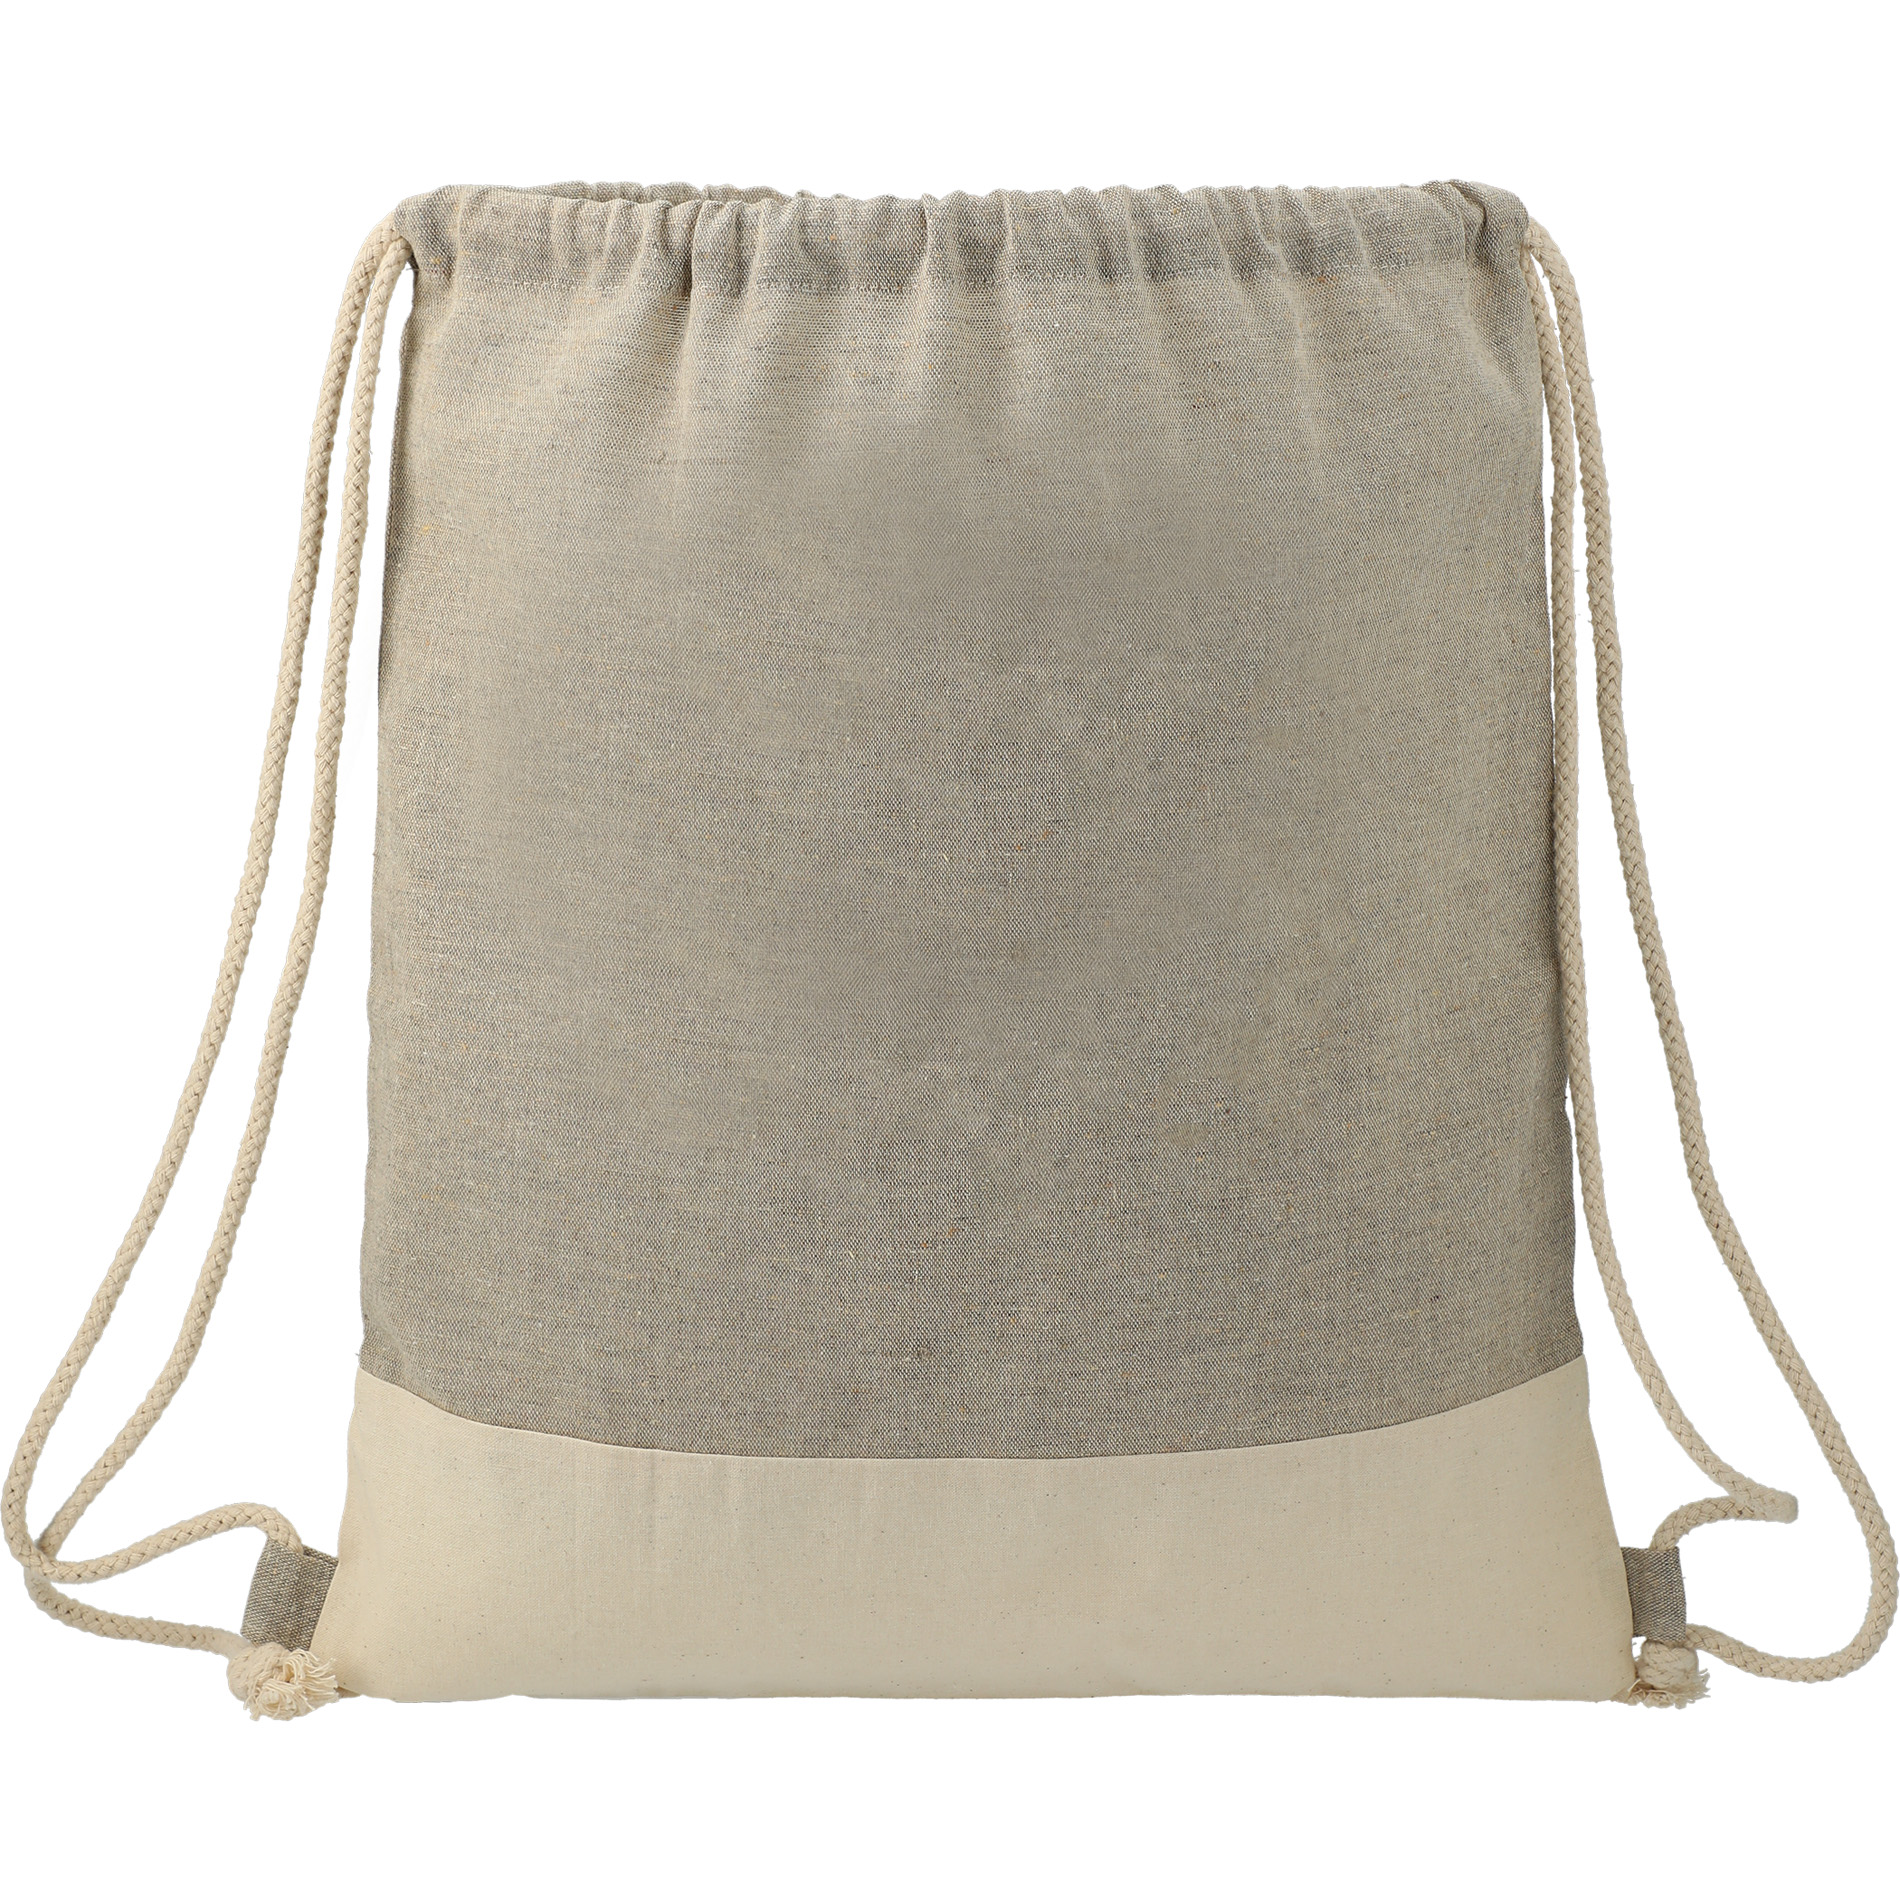 LEEDS 3005-73 - Split Recycled Cotton Drawstring Bag